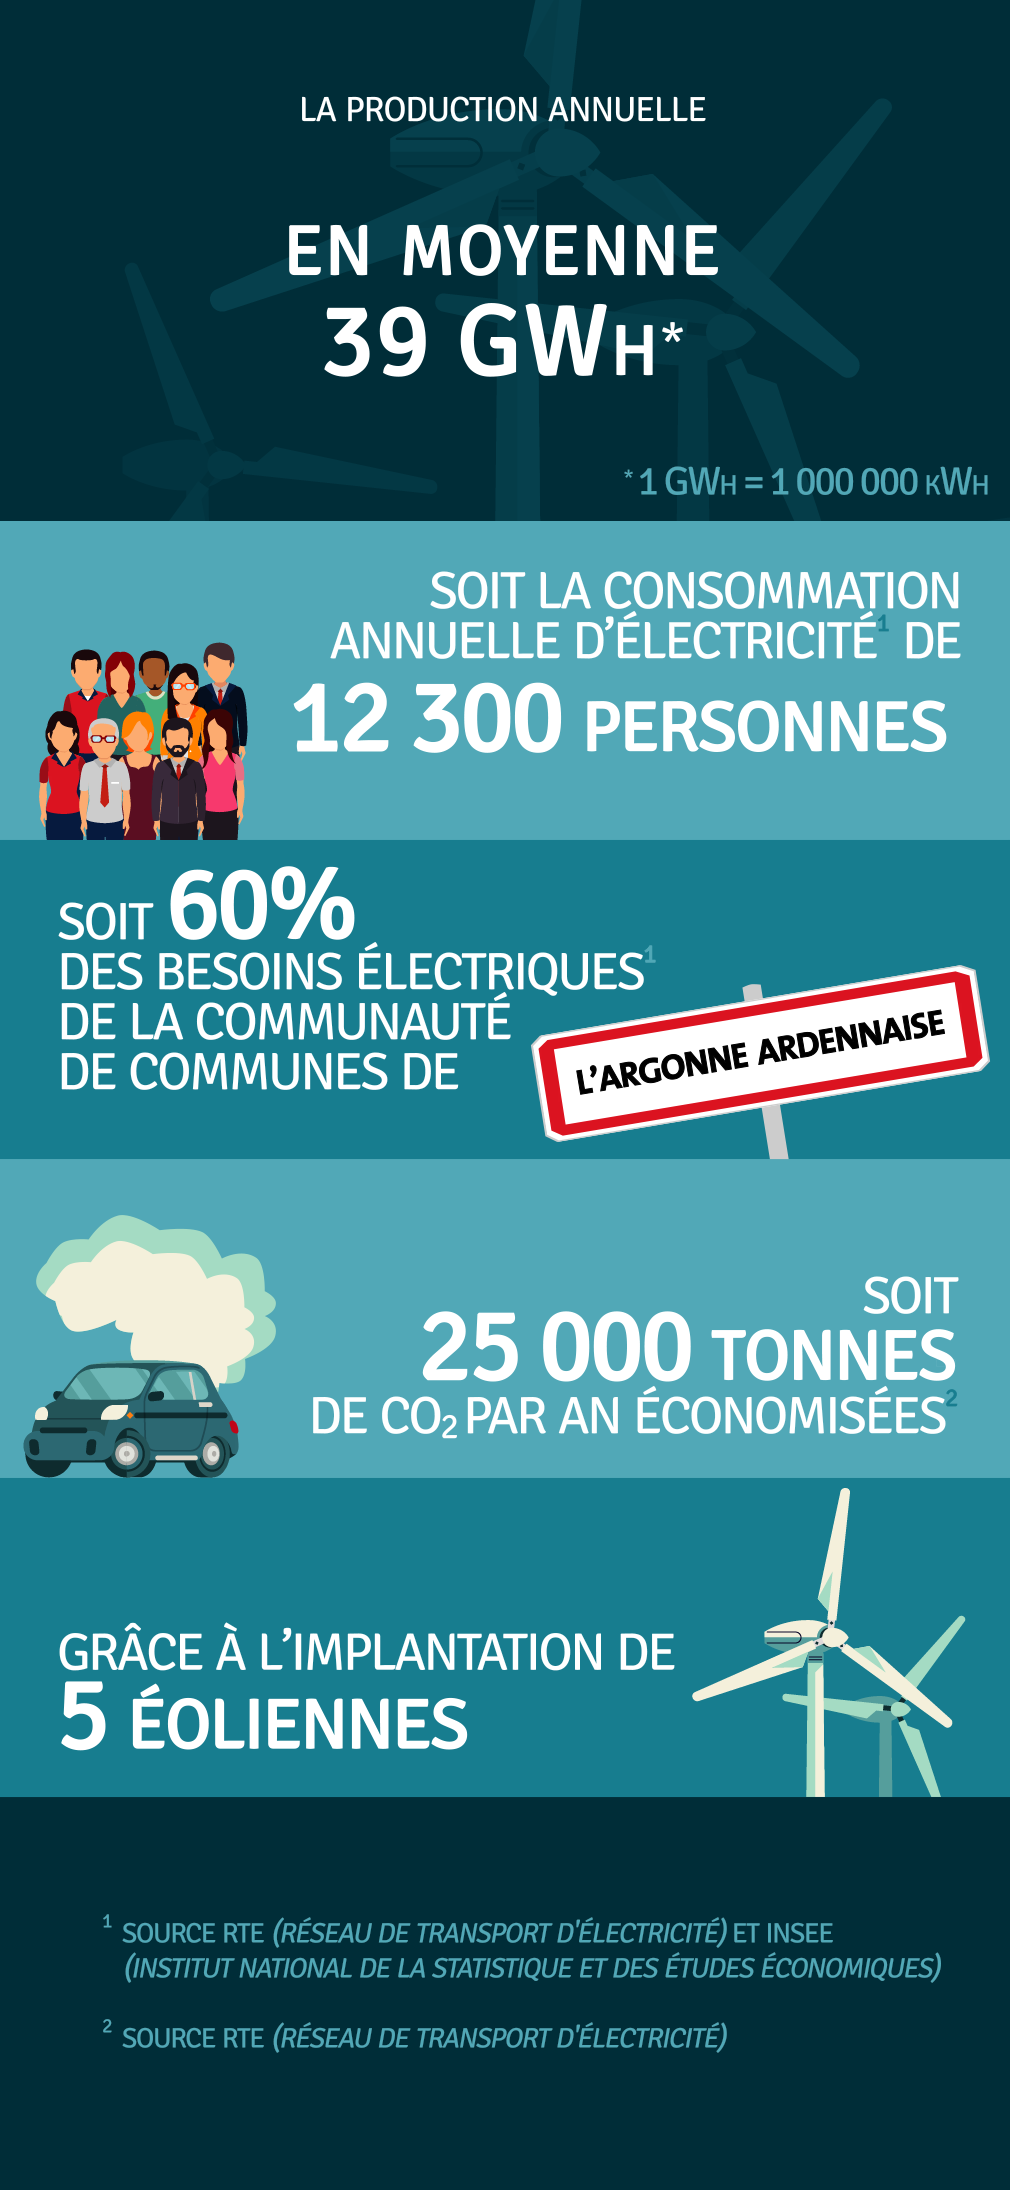 Production annuelle 39 000 000 kWh